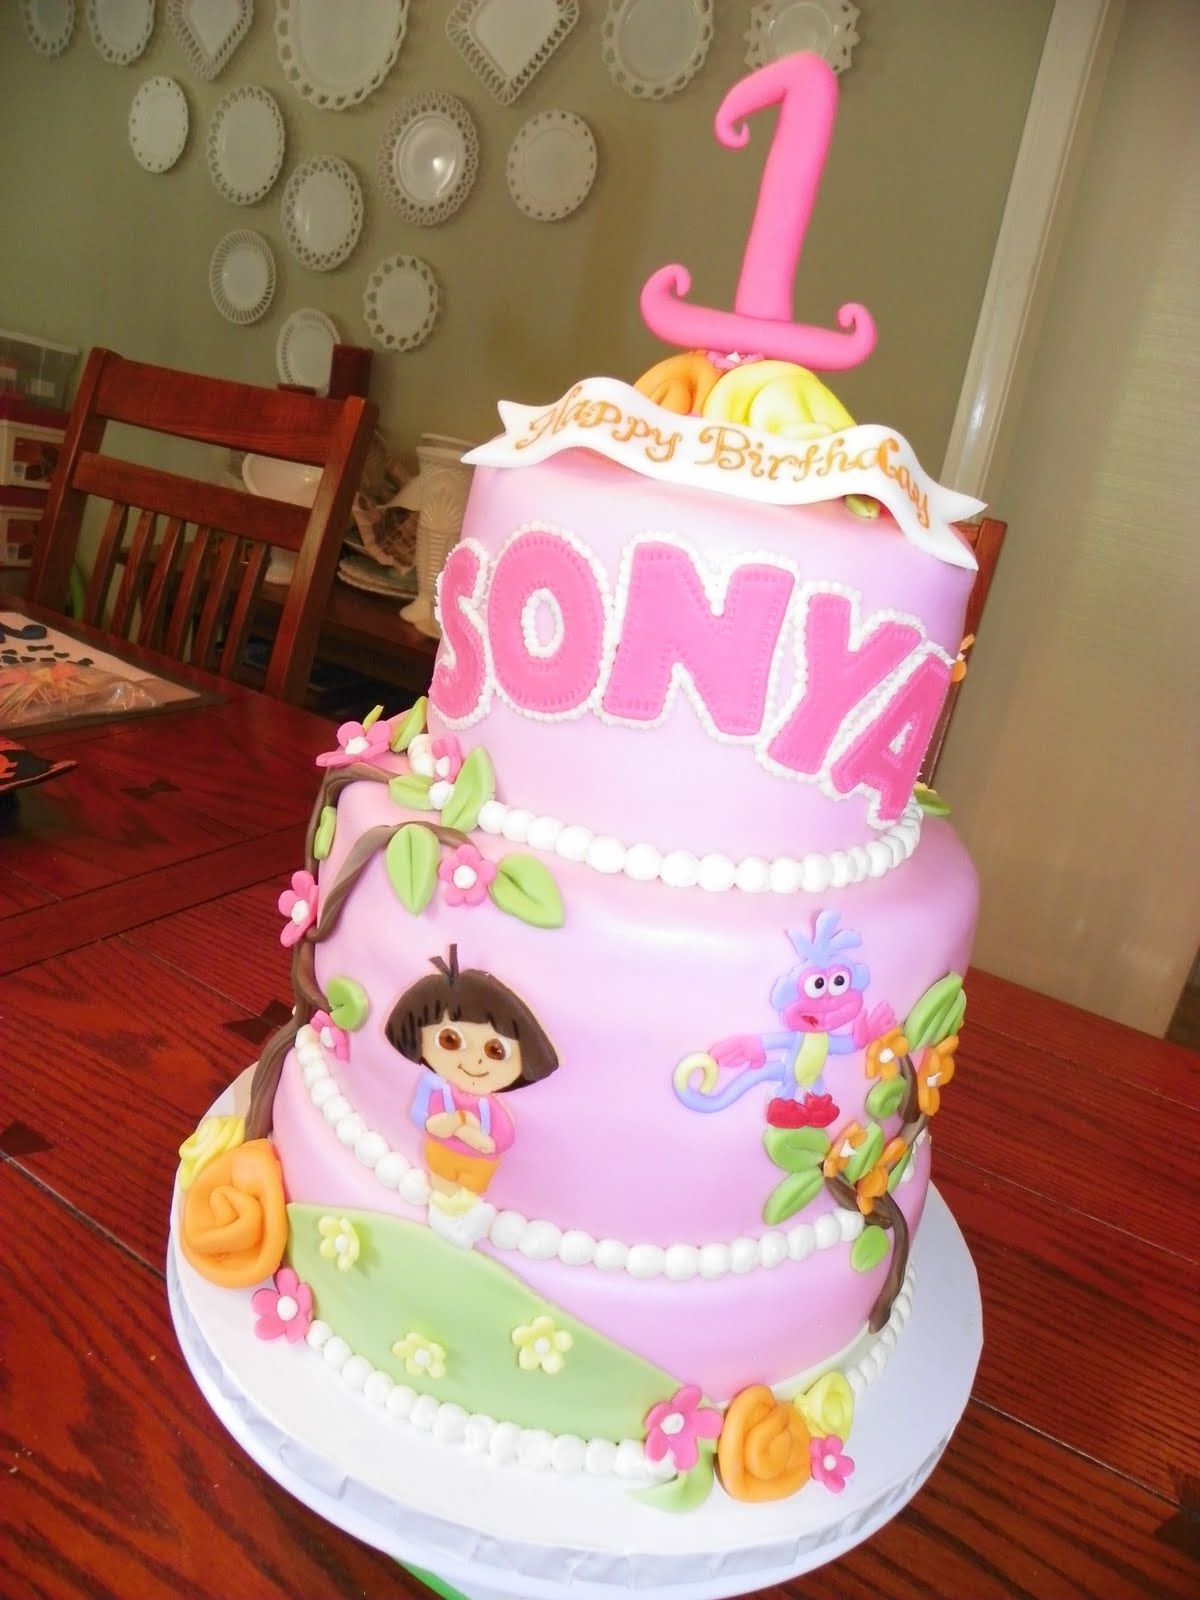 Plumeria Cake Studio Dora the Explorer Birthday Cake